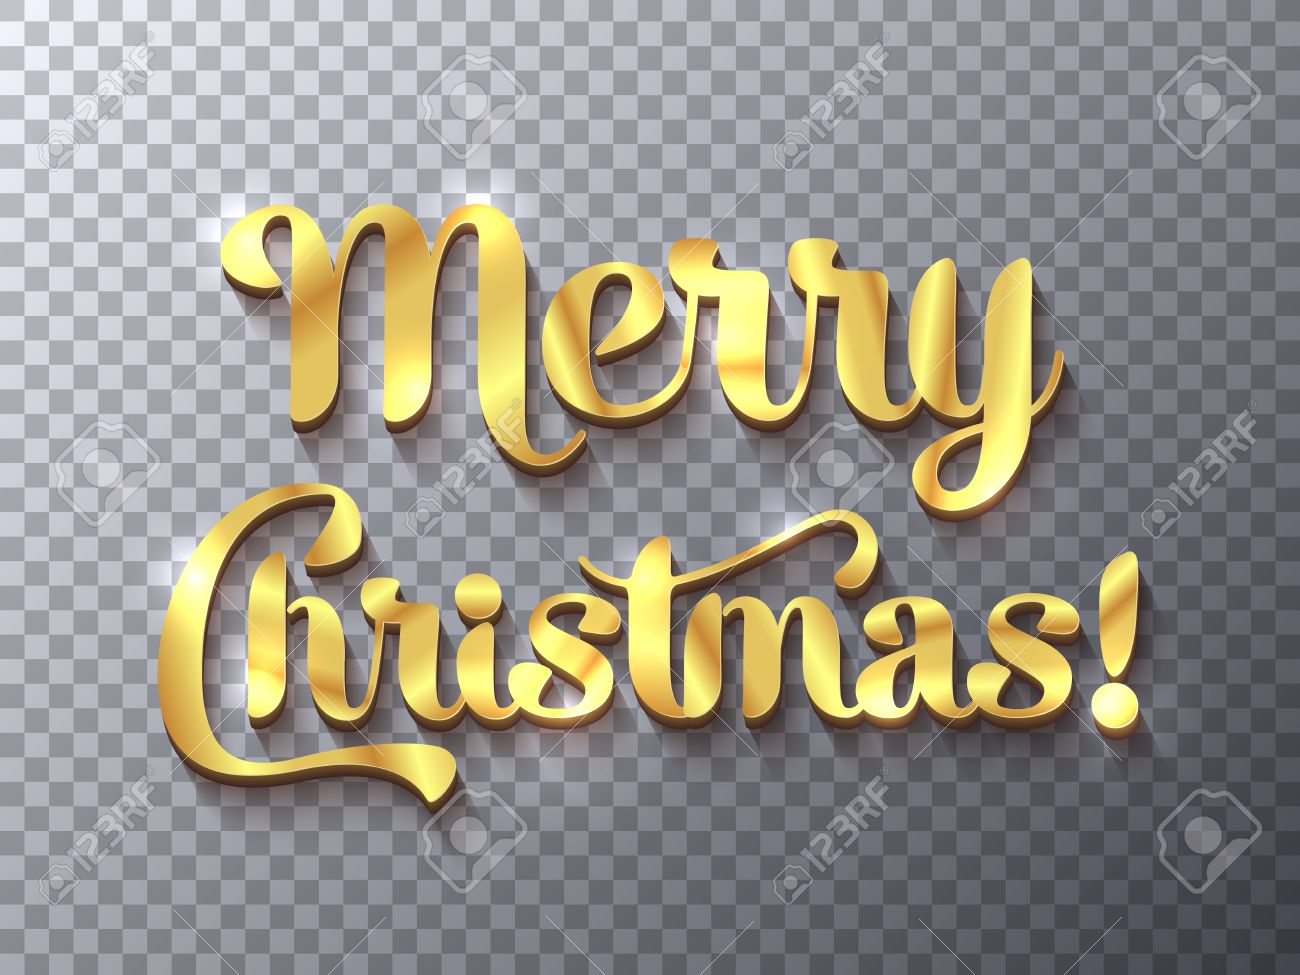 Merry Christmas Golden Sign On Transparent Background Royalty Free ...